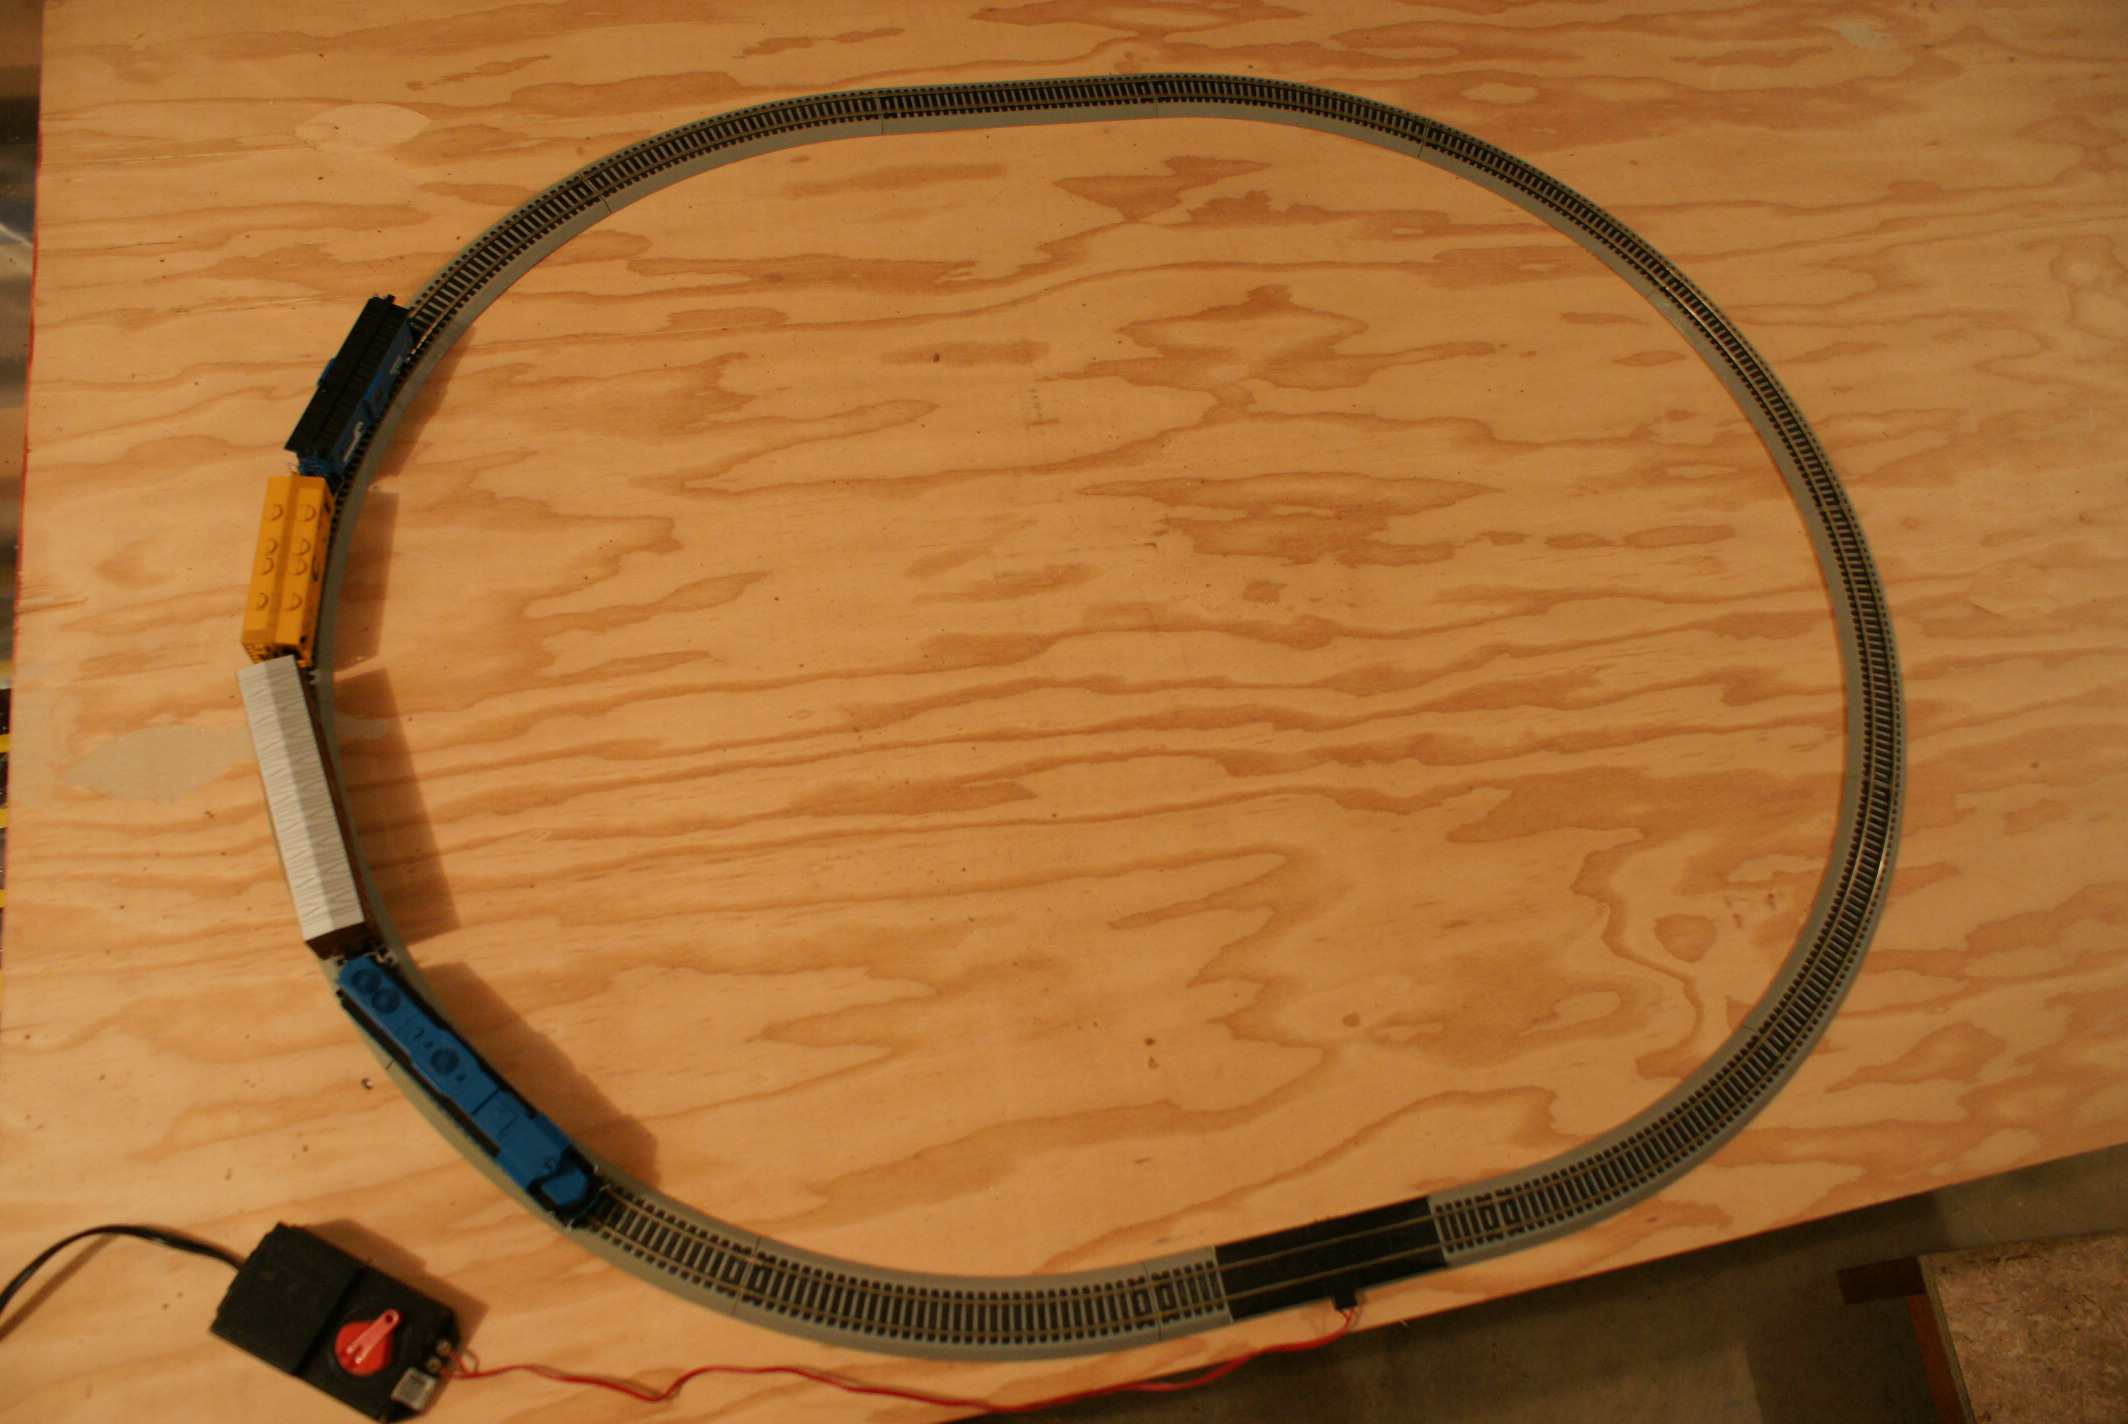 A simple train track circuit